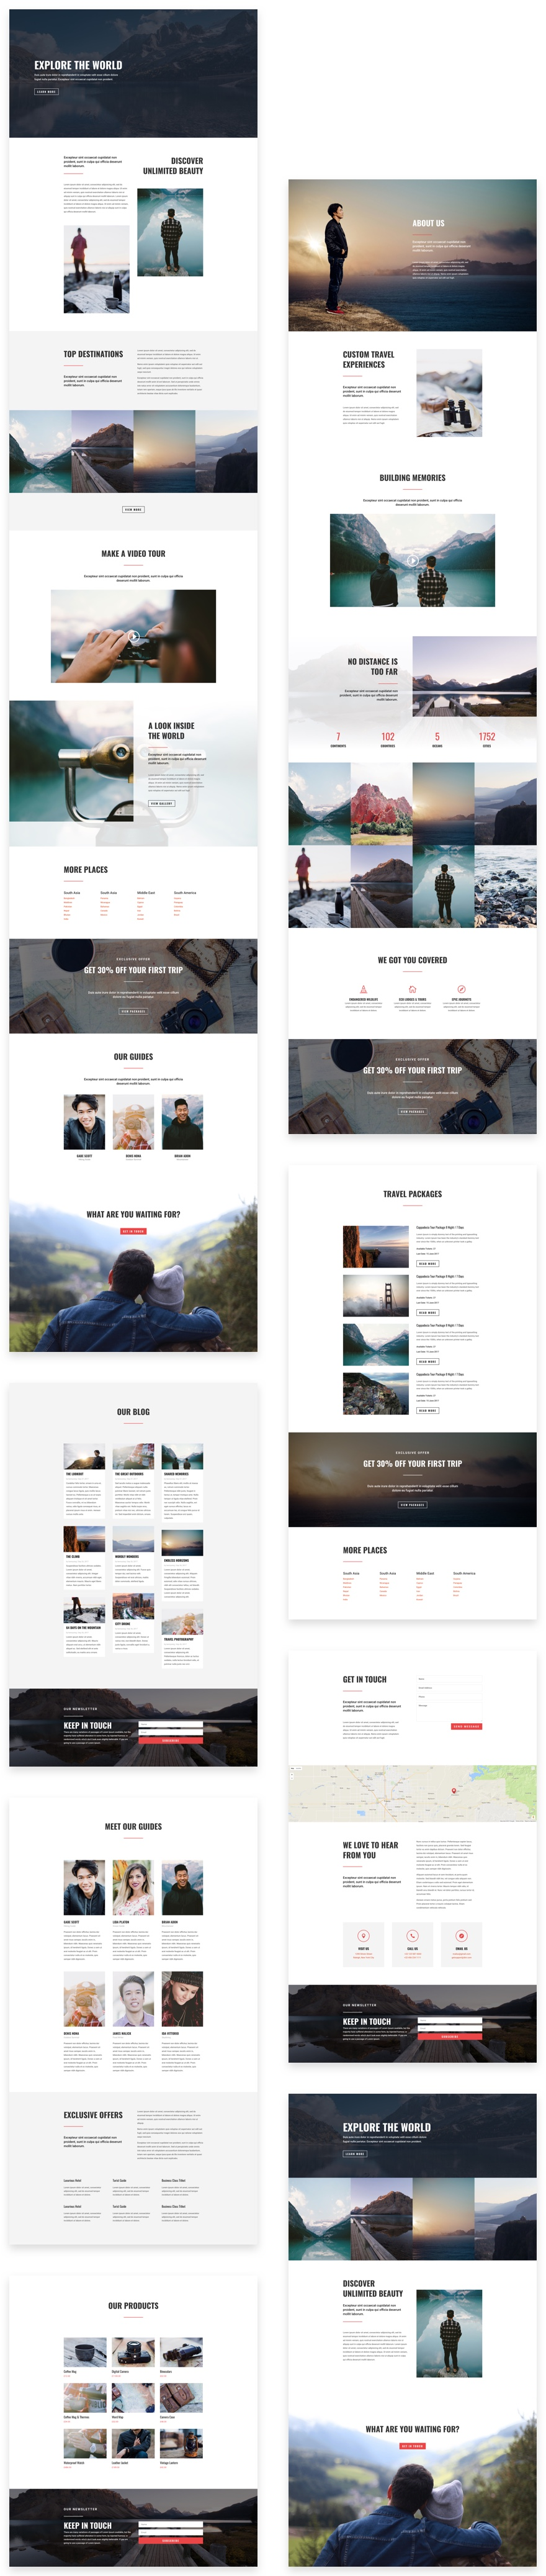 divi-layout-voyage-pack-telecharger